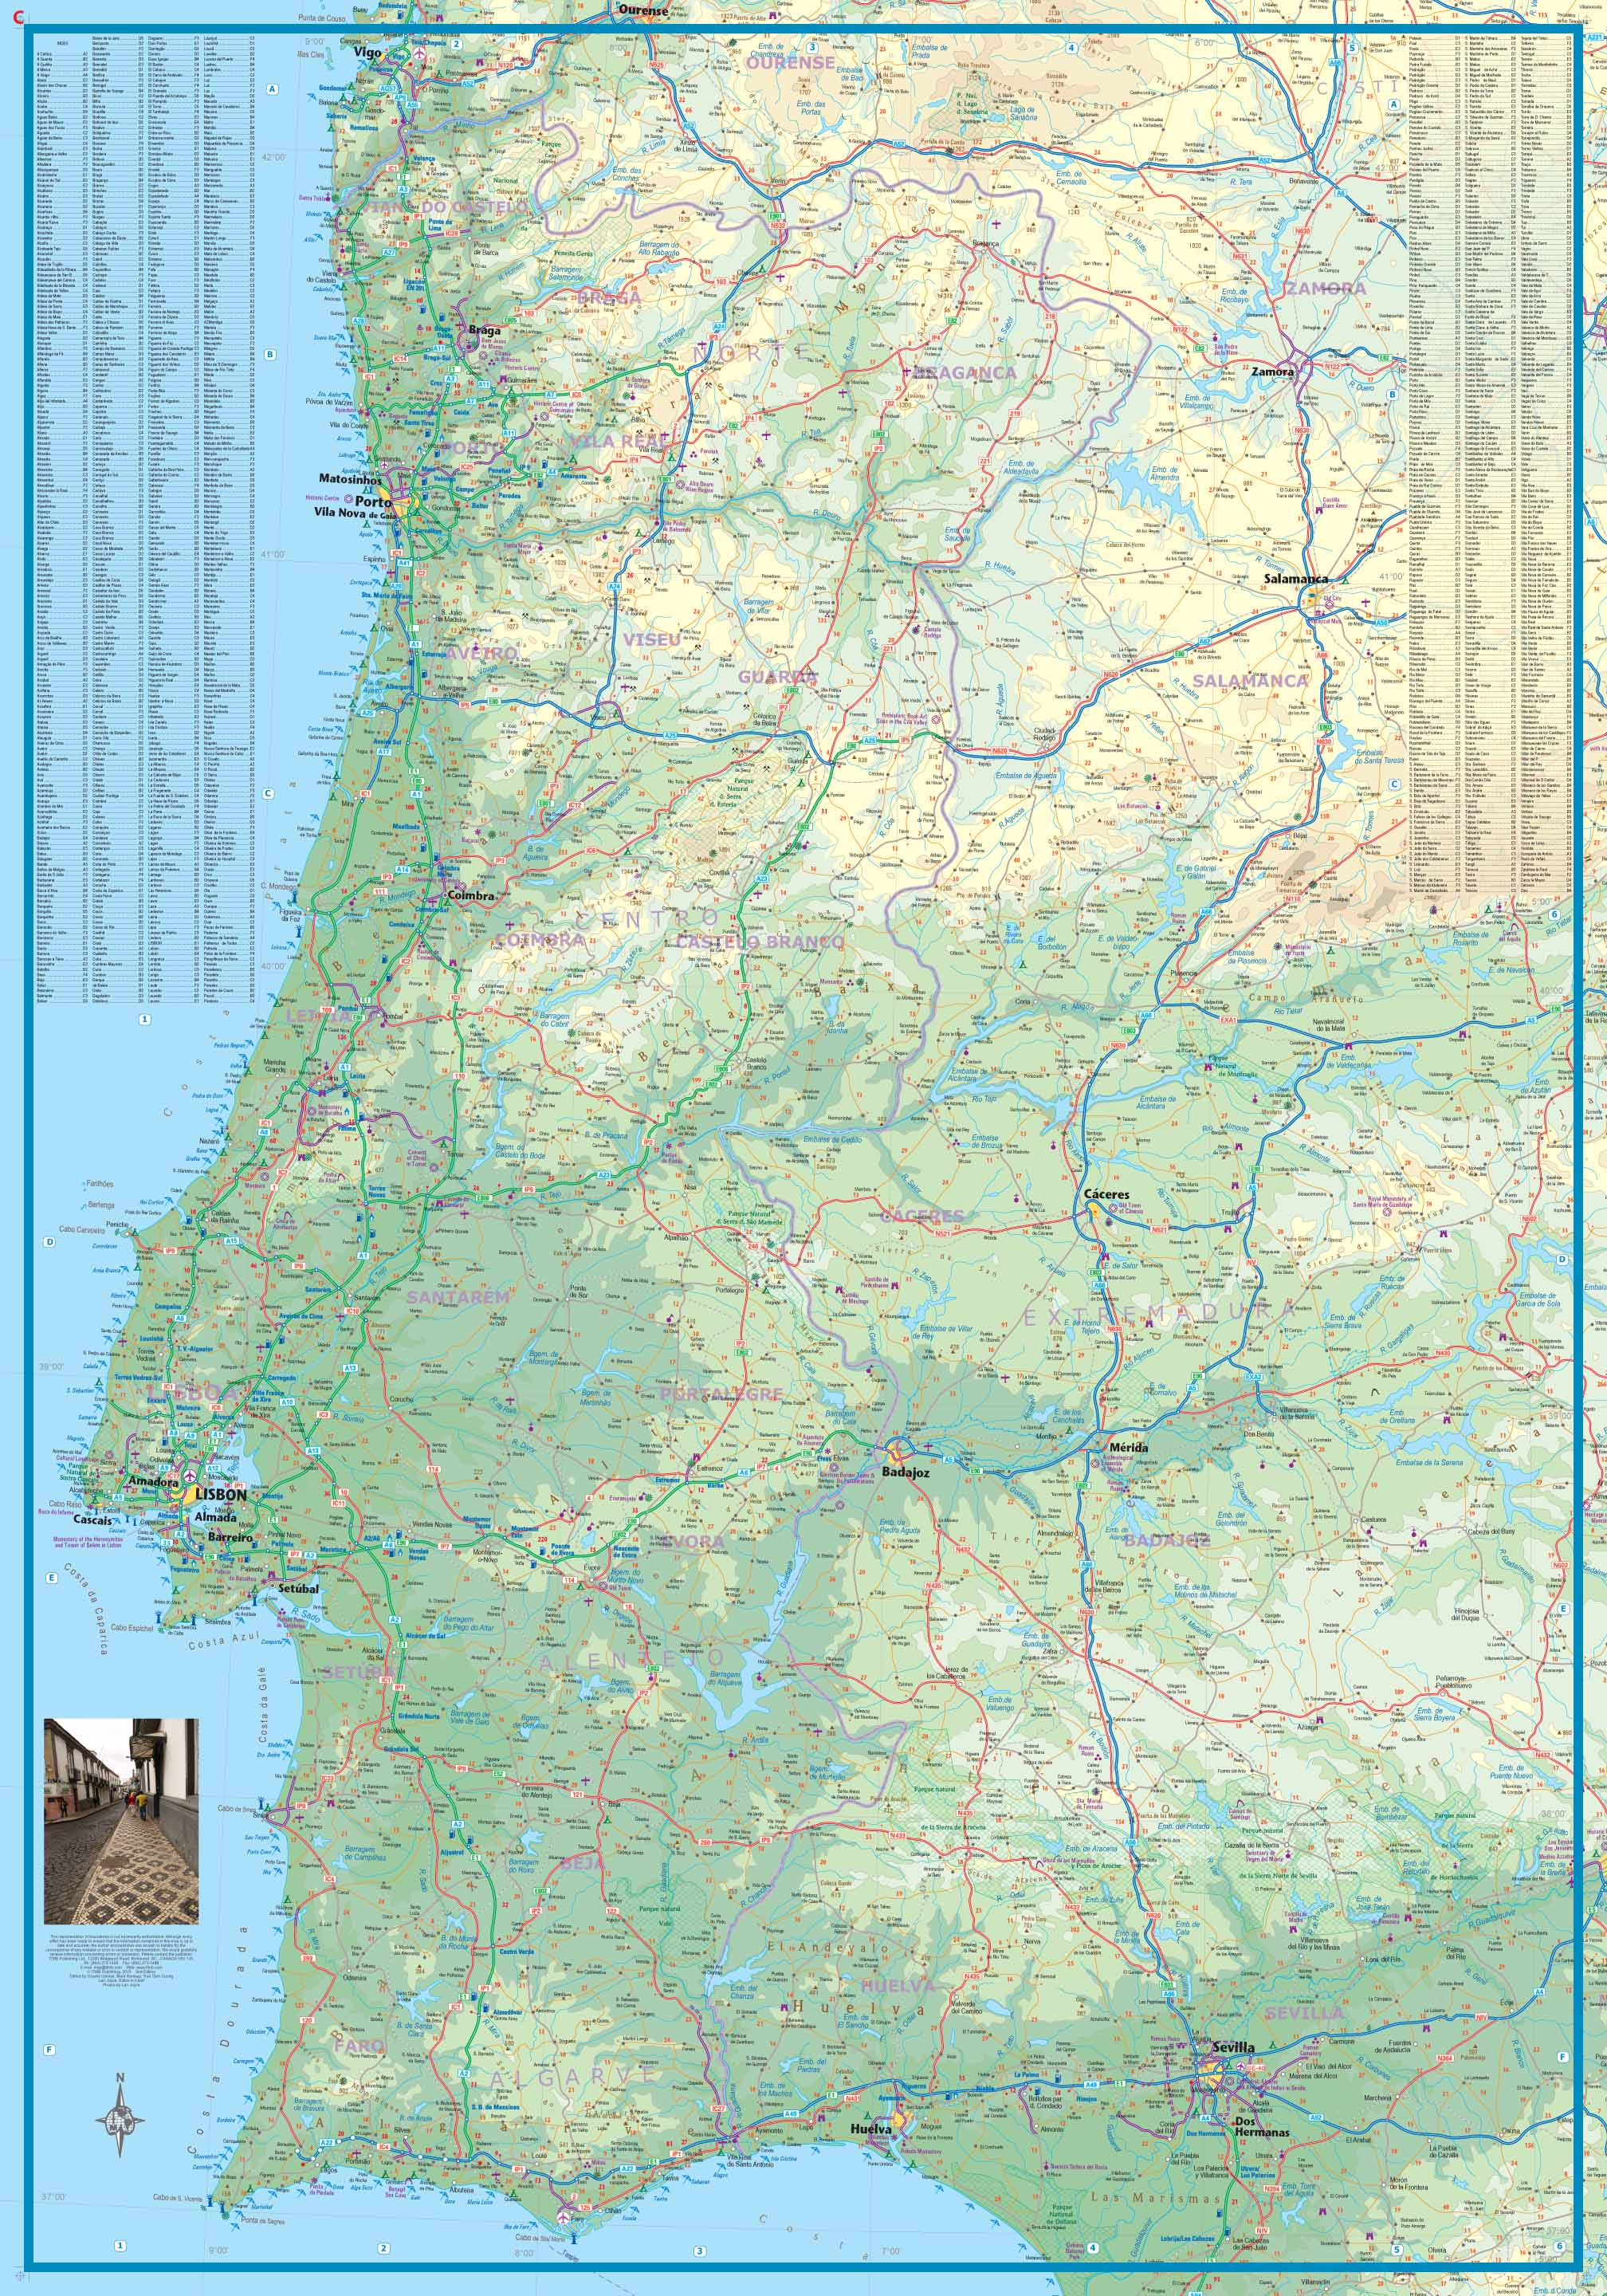 Maps For Travel City Maps Road Maps Guides Globes Topographic - Portugal map south